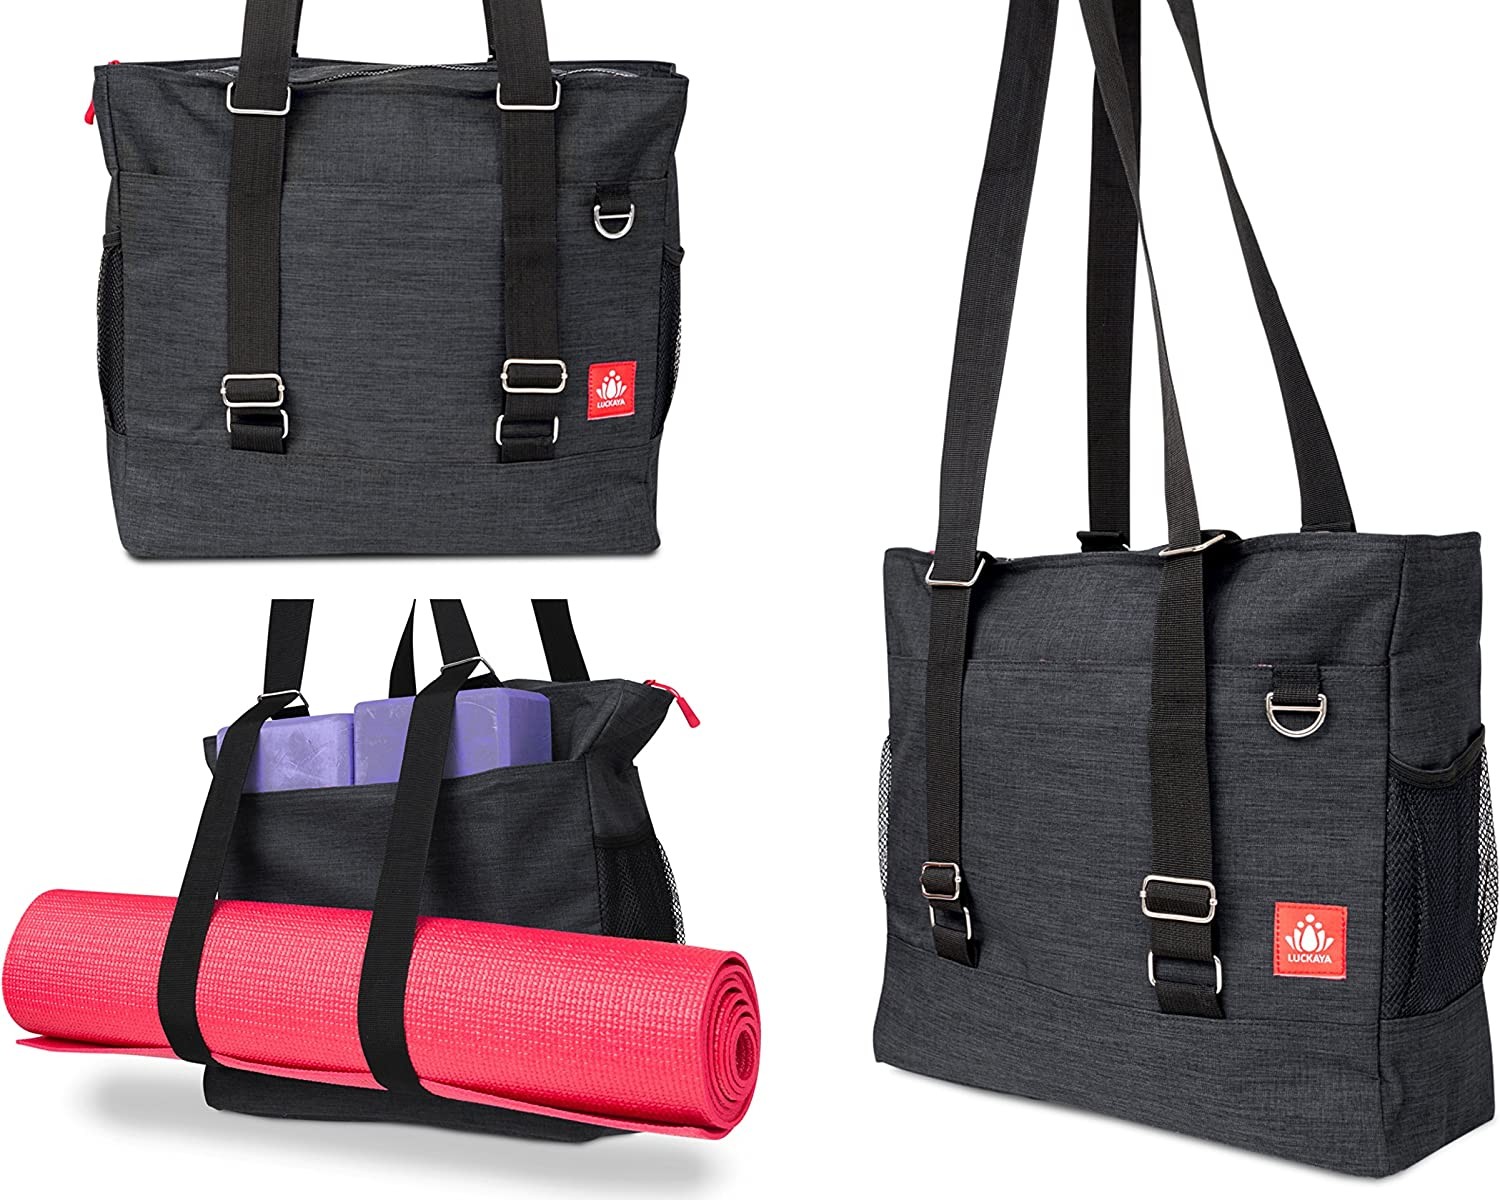 LUCKAYA Yoga Mat Bag/Tote Bag/Backpack: Multi Purpose Carryall Bag for Office,Yoga,Travel and Gym! Carry Your Mat of Any Size,Laptop and Gear in One ...